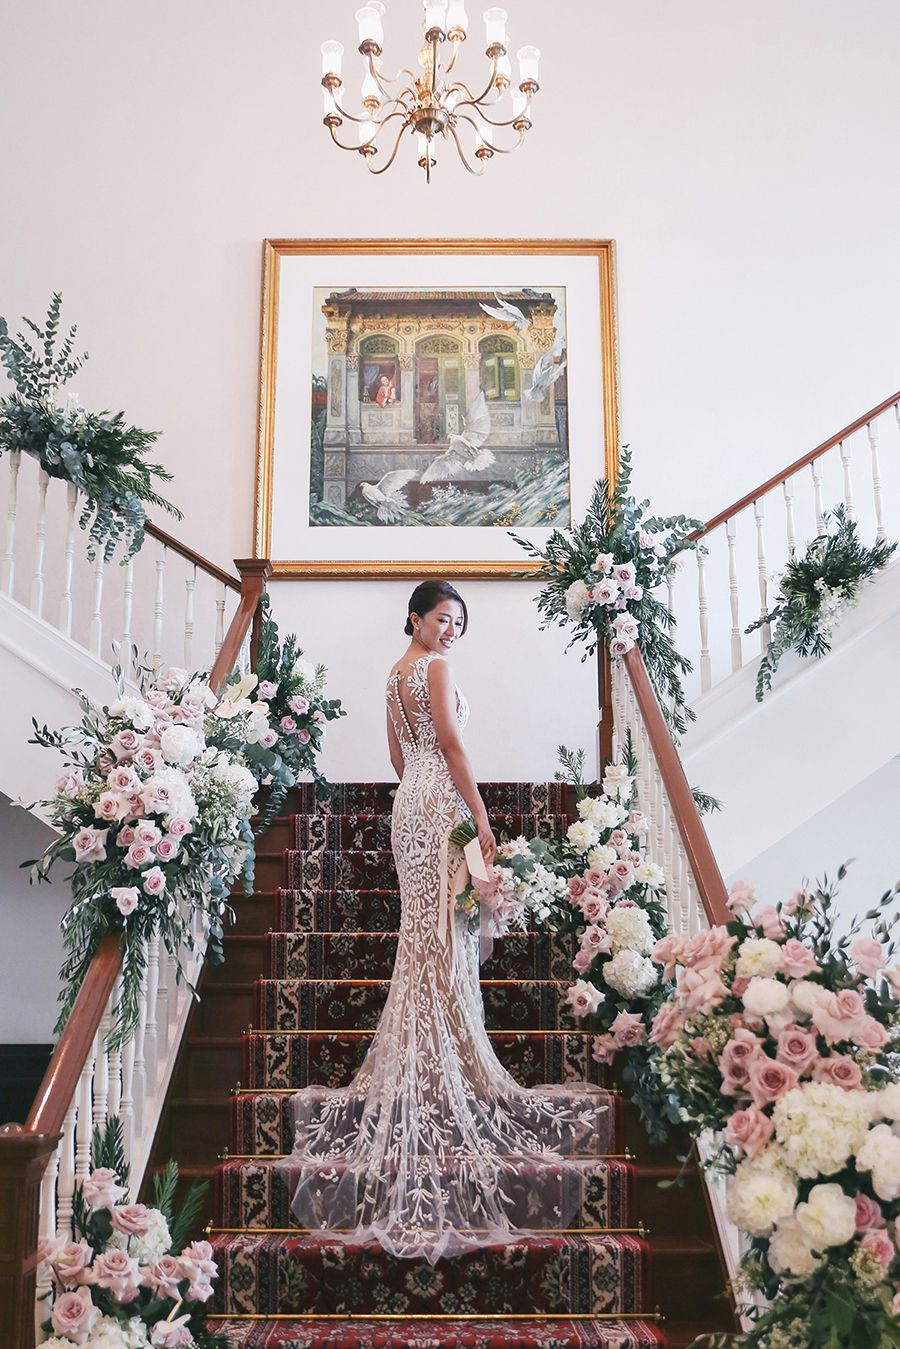 Still Swooning Over Rachel S Beautiful Bali Wedding We Re Back With More Of Her Red Carpet Worthy Style Including A Third Gown By Atelier Ovias